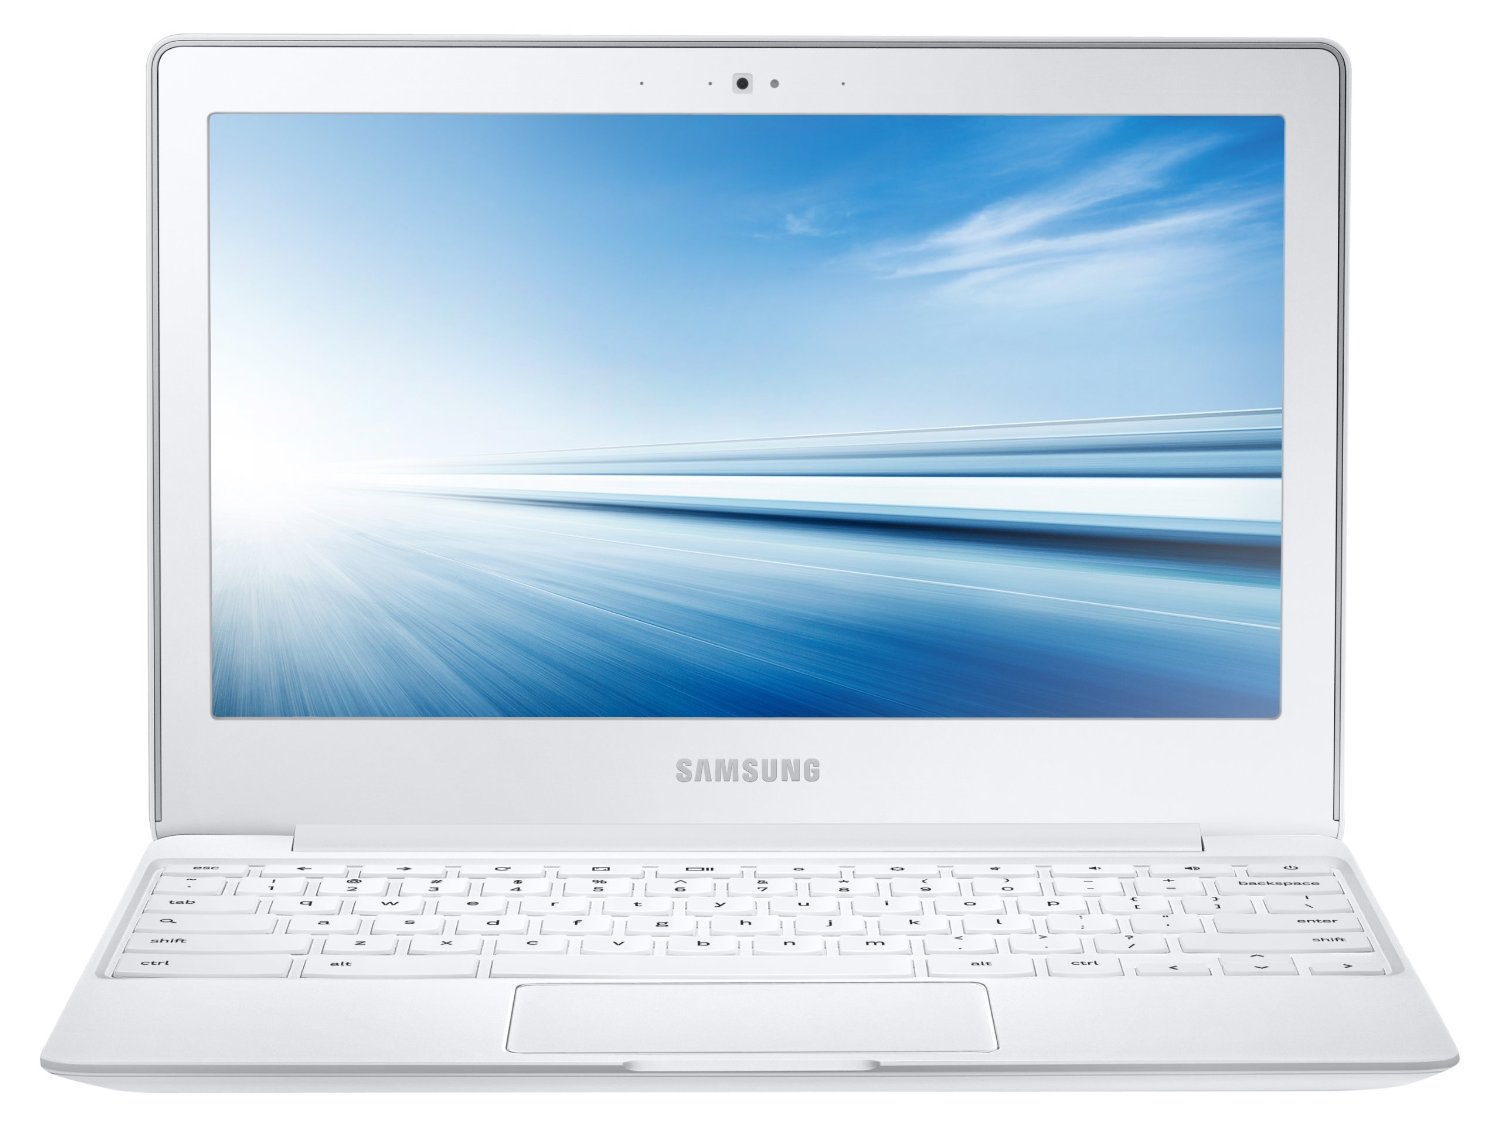 Samsung's white Chromebook 2 on sale at Amazon for $239